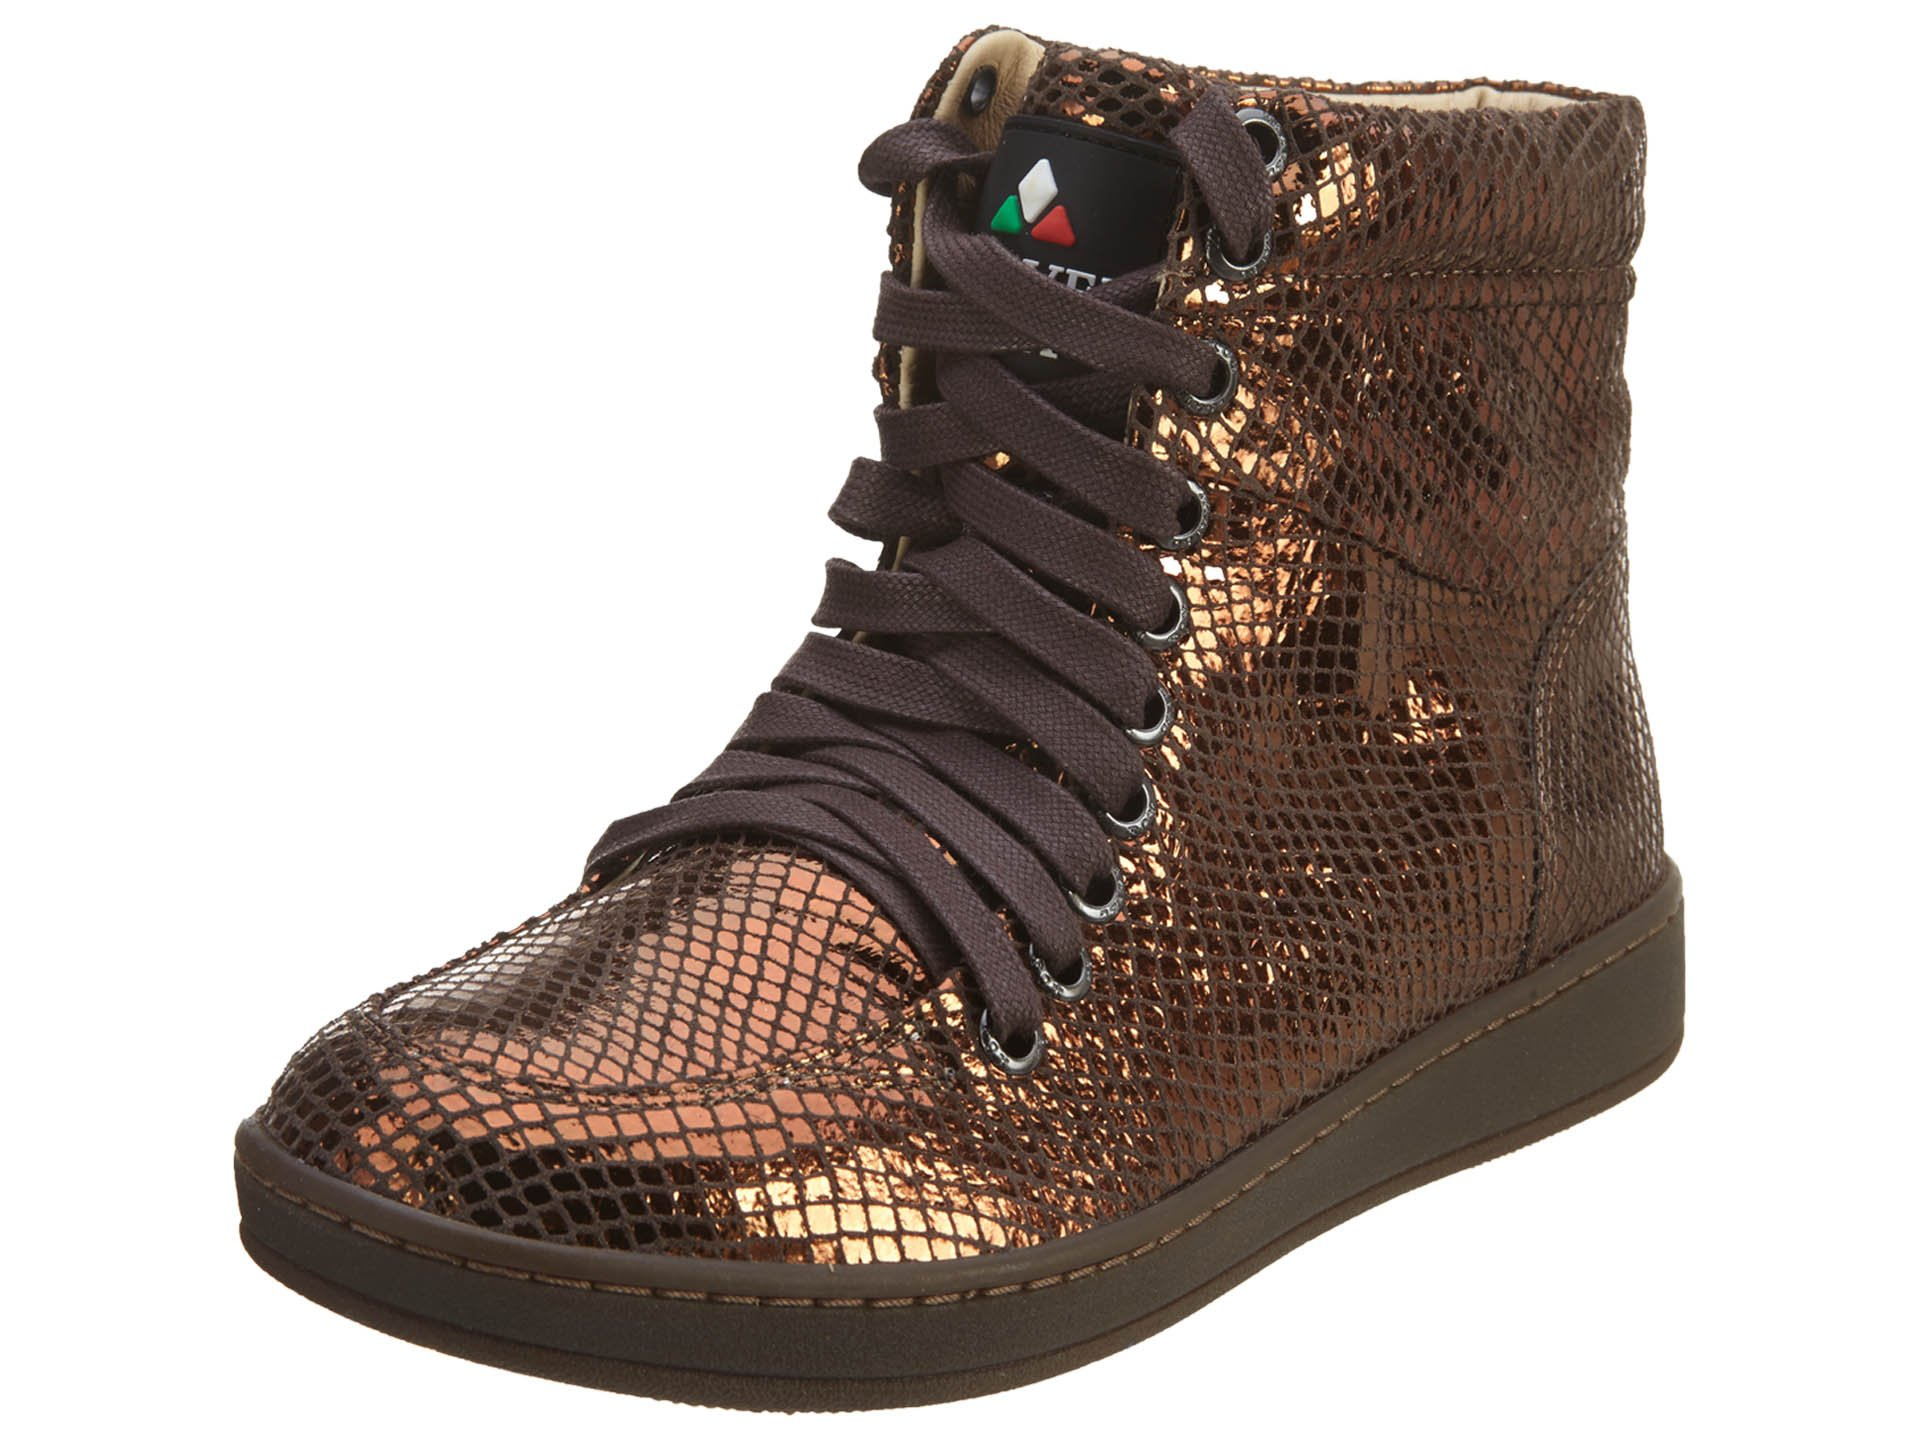 Travel Fox 900 Series Embossed Snakeskin Womens Style: 914820-52 Size: 38 by TRAVEL FOX